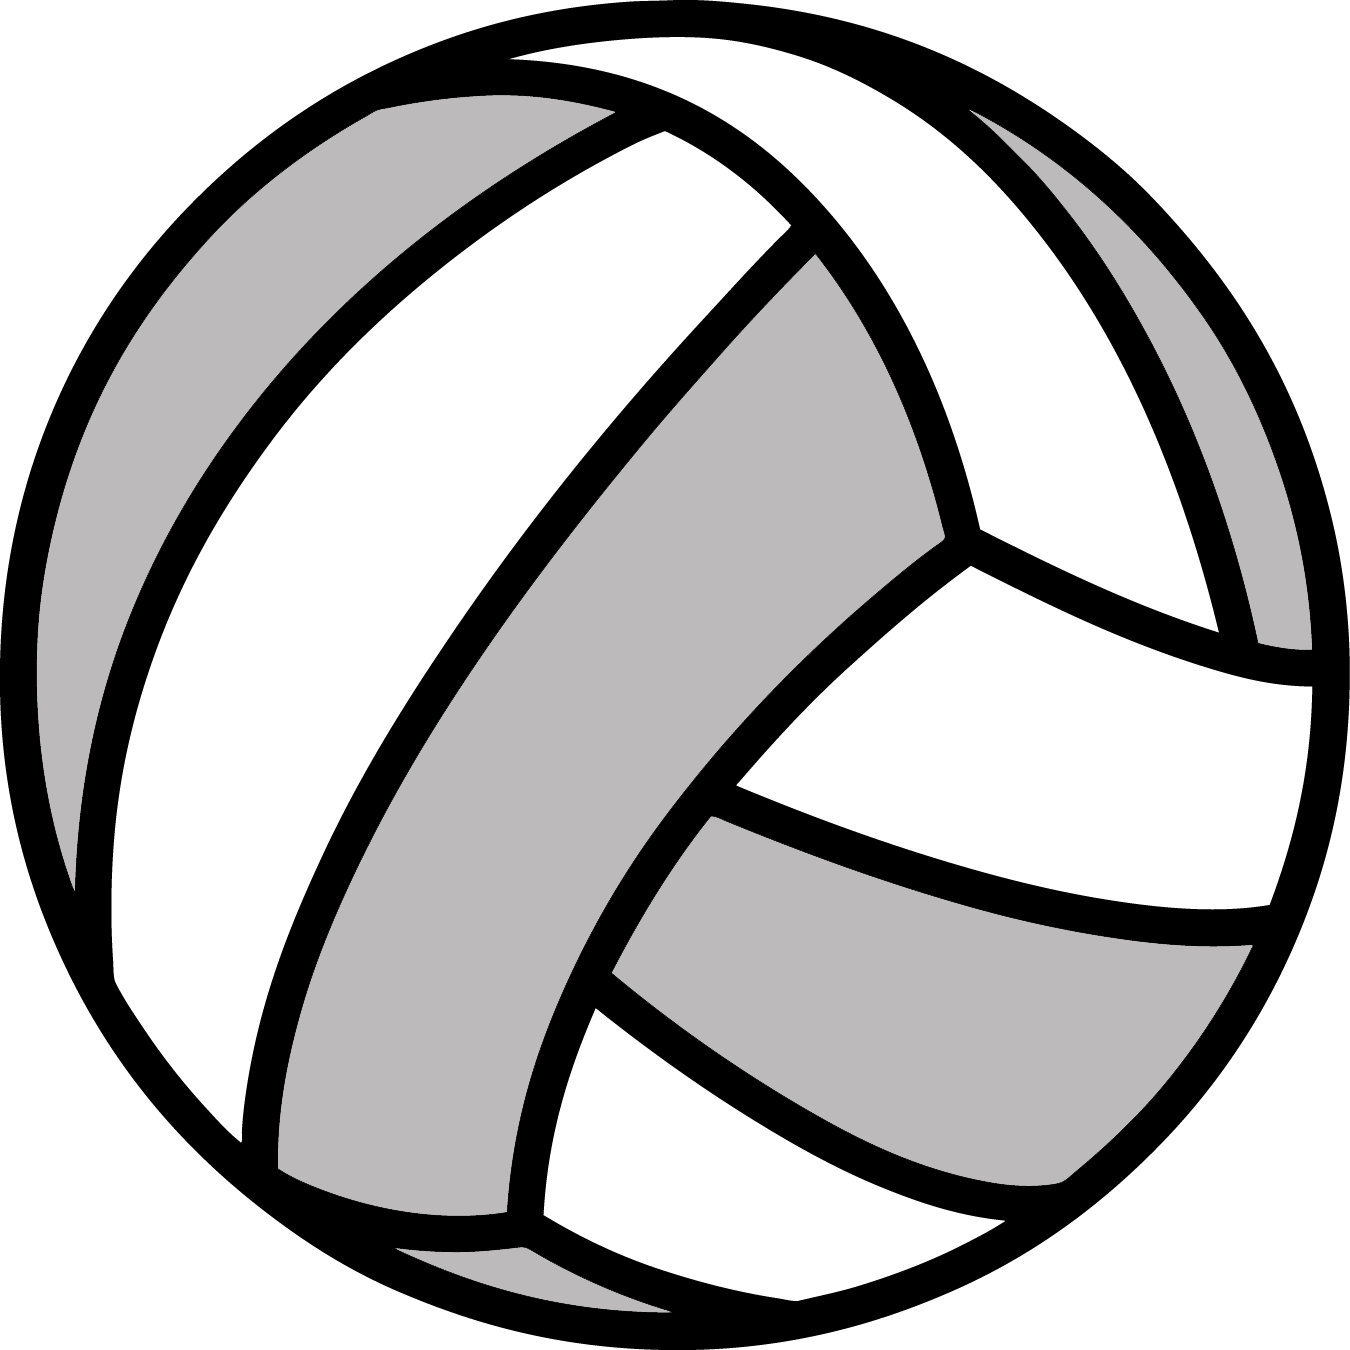 clipart transparent library Png images transparent free. Volleyball clipart